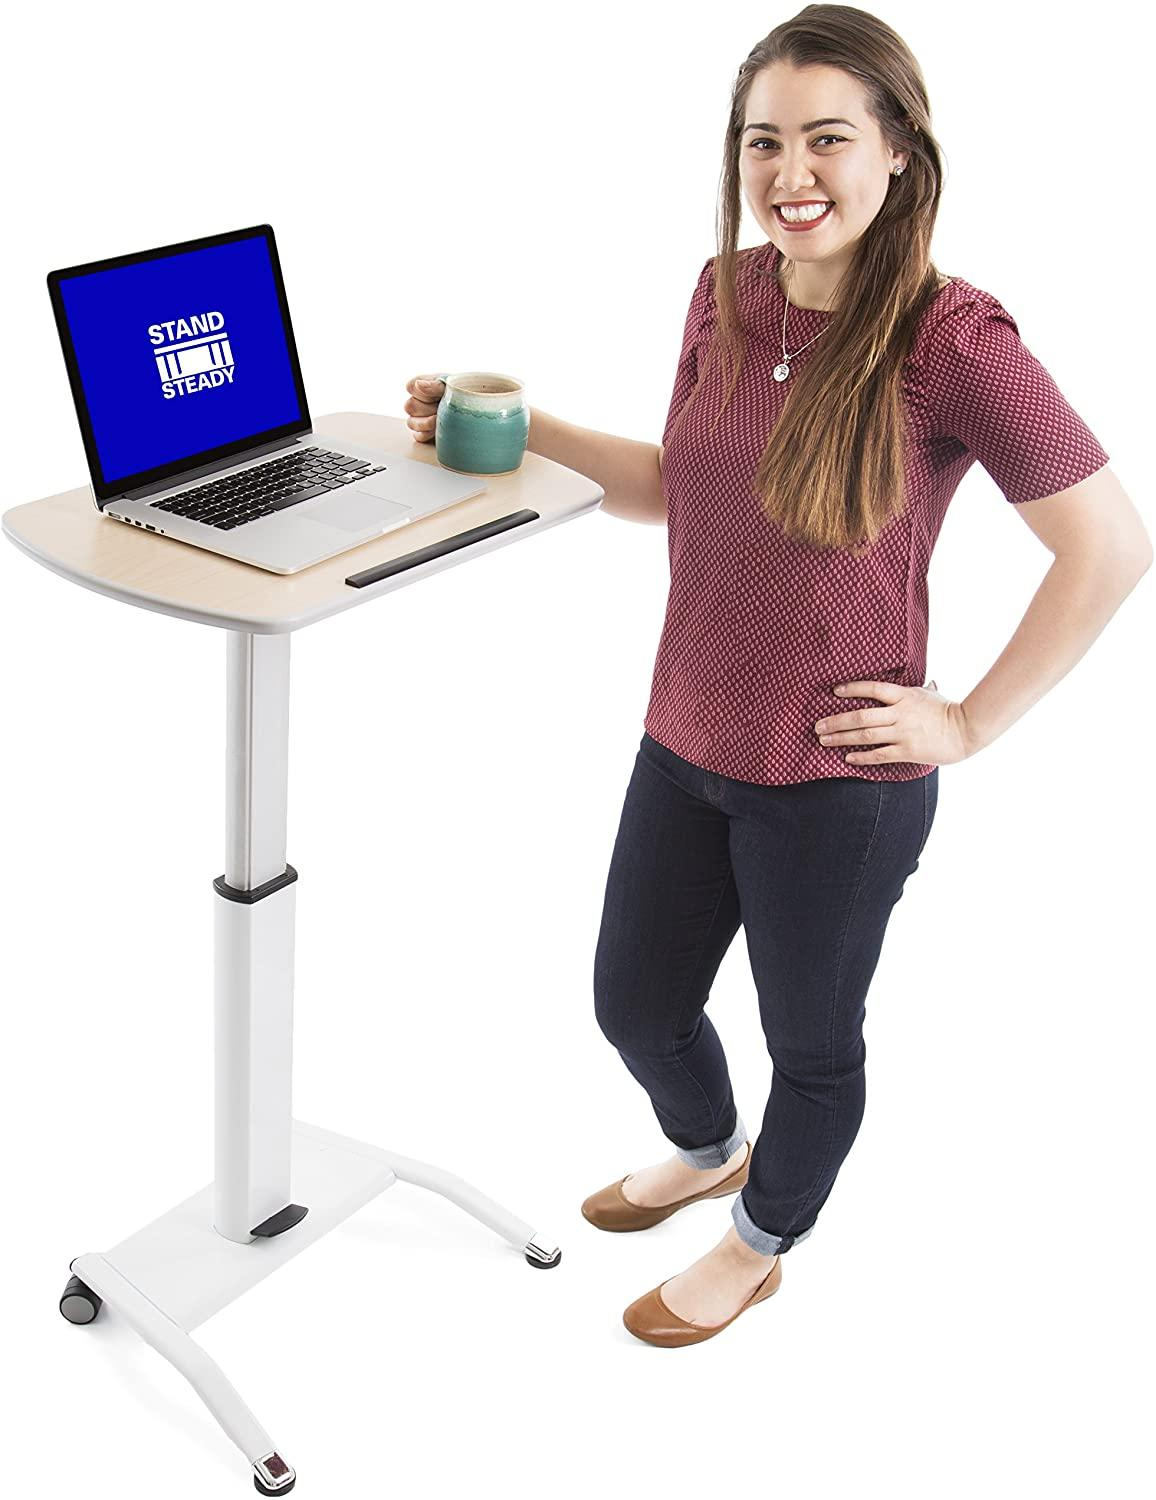 Stand Steady Multifunctional Podium | Lectern | Laptop Stand | Mobile  Workstation! Excellent use for classrooms, Offices, and Home!: Electronics  - Amazon.com